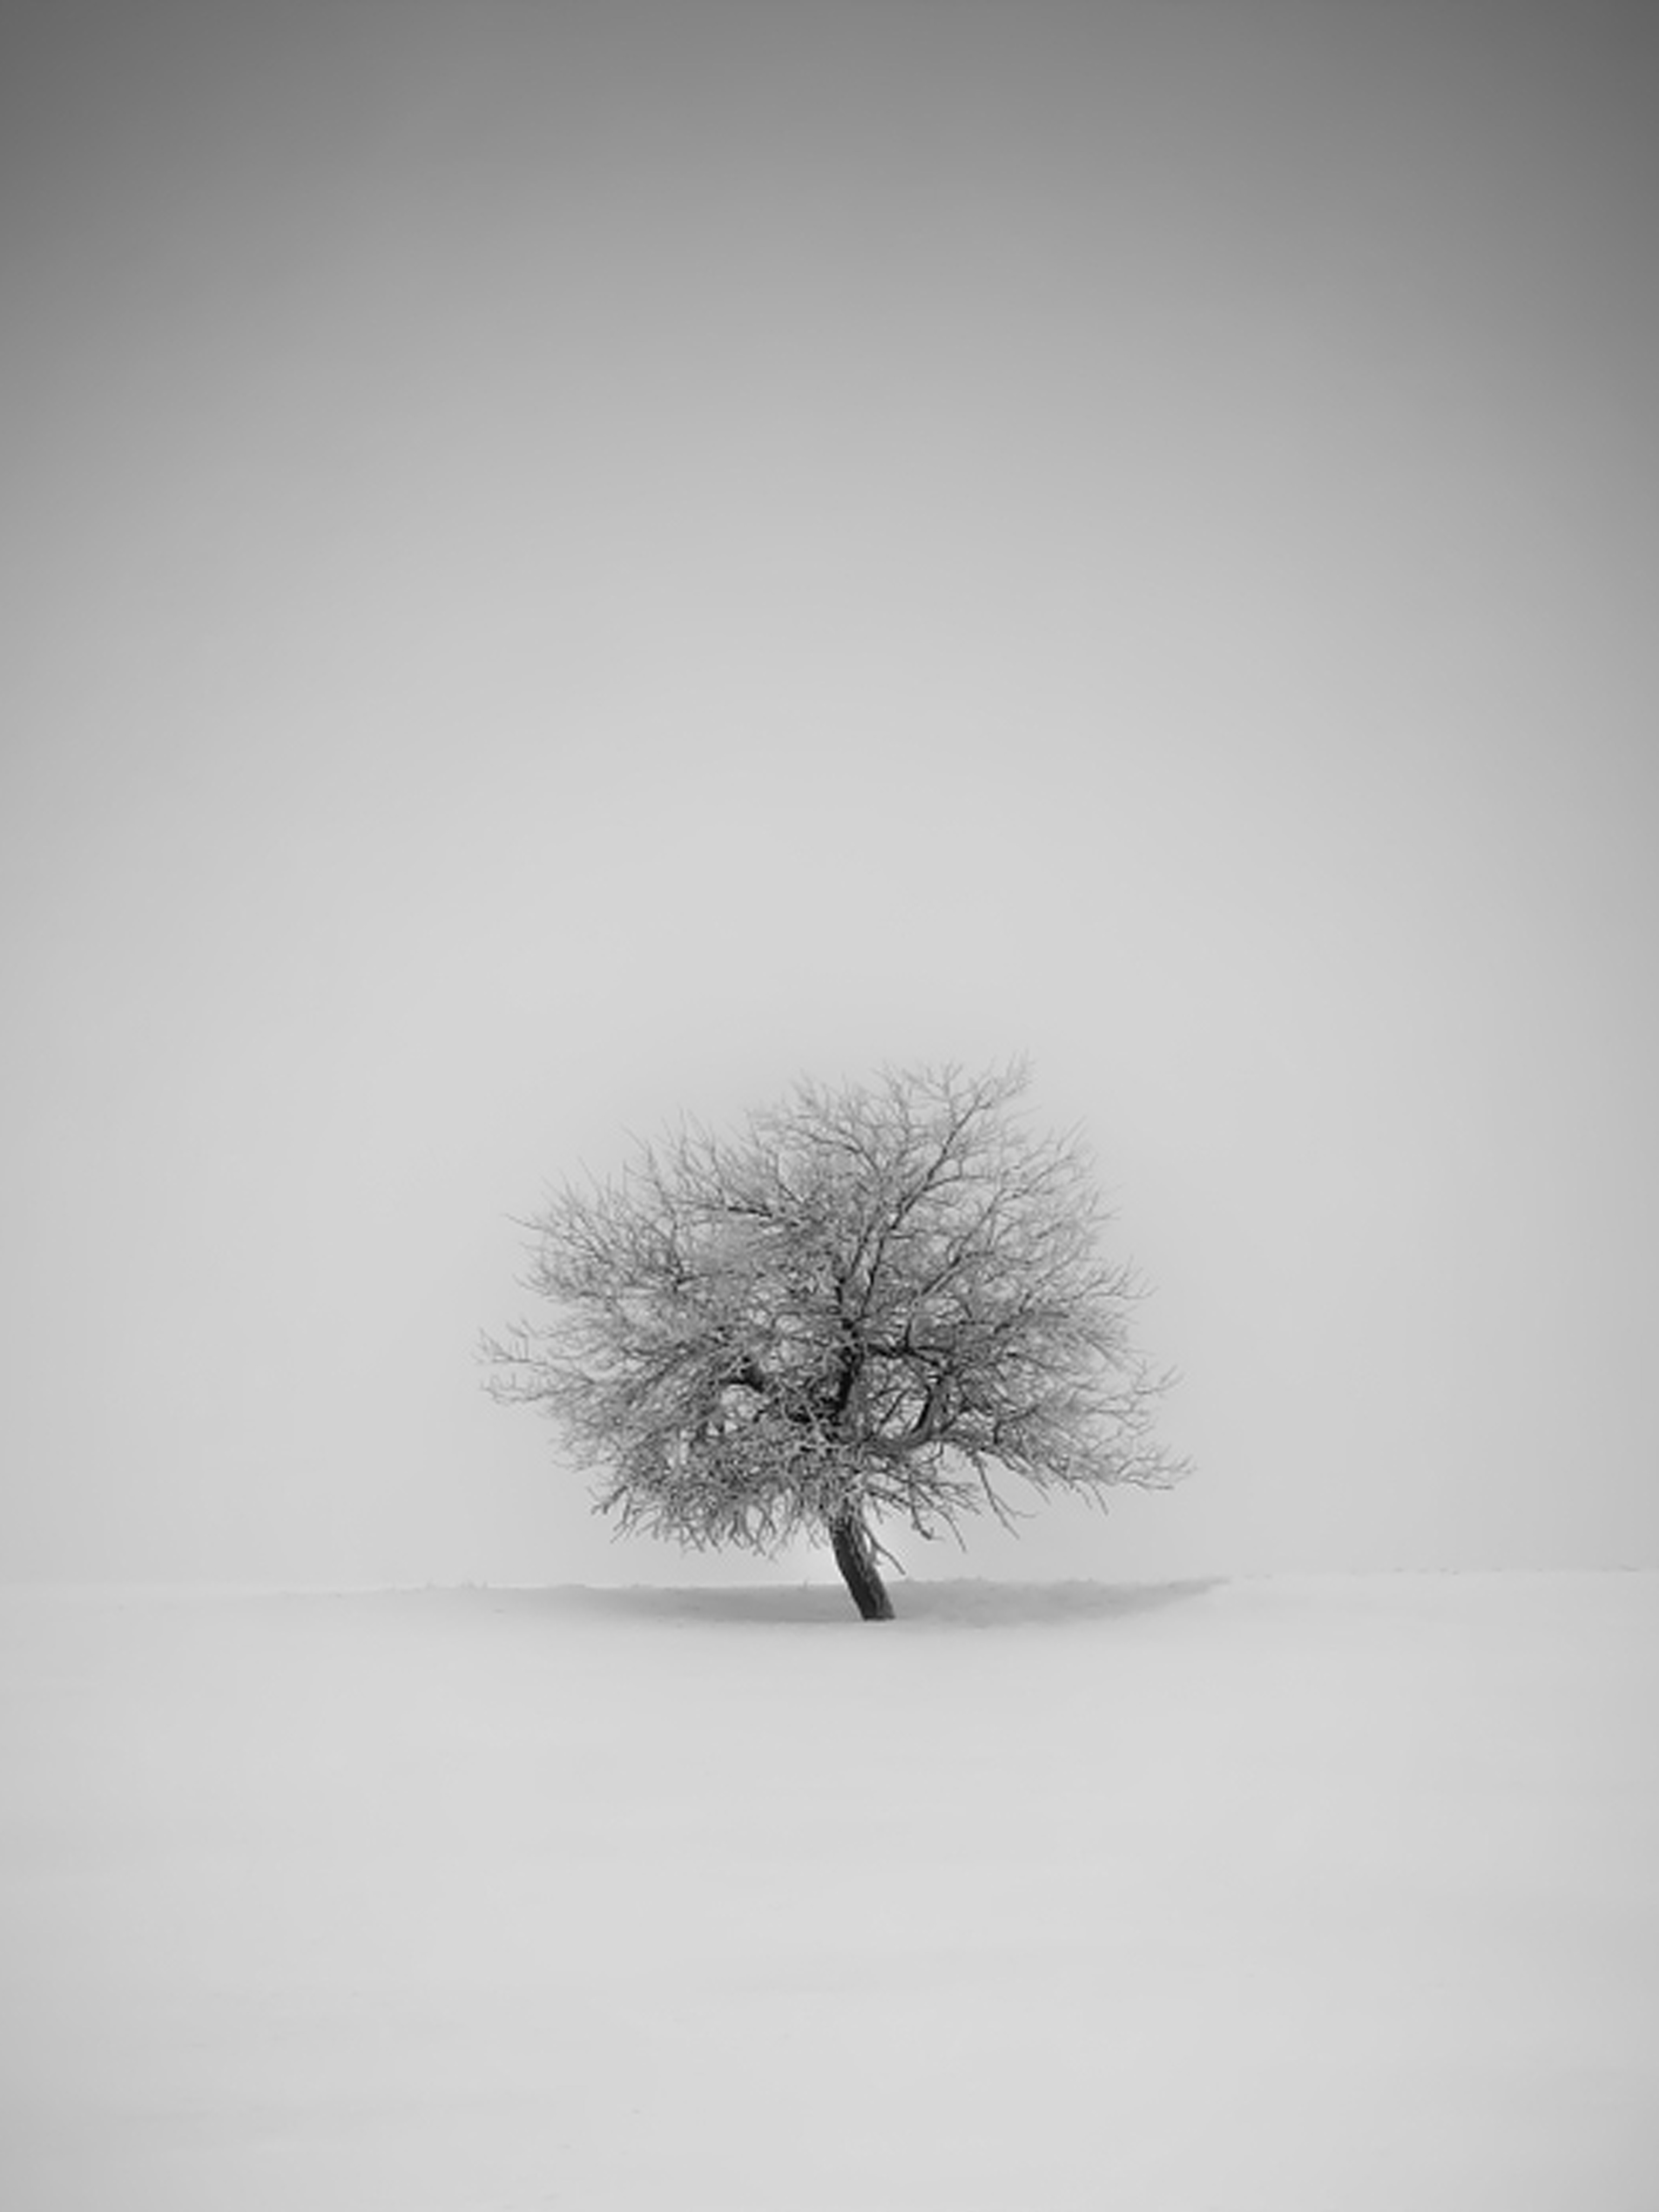 Winter tree mobile wallpaper miniwallist download for ios voltagebd Images